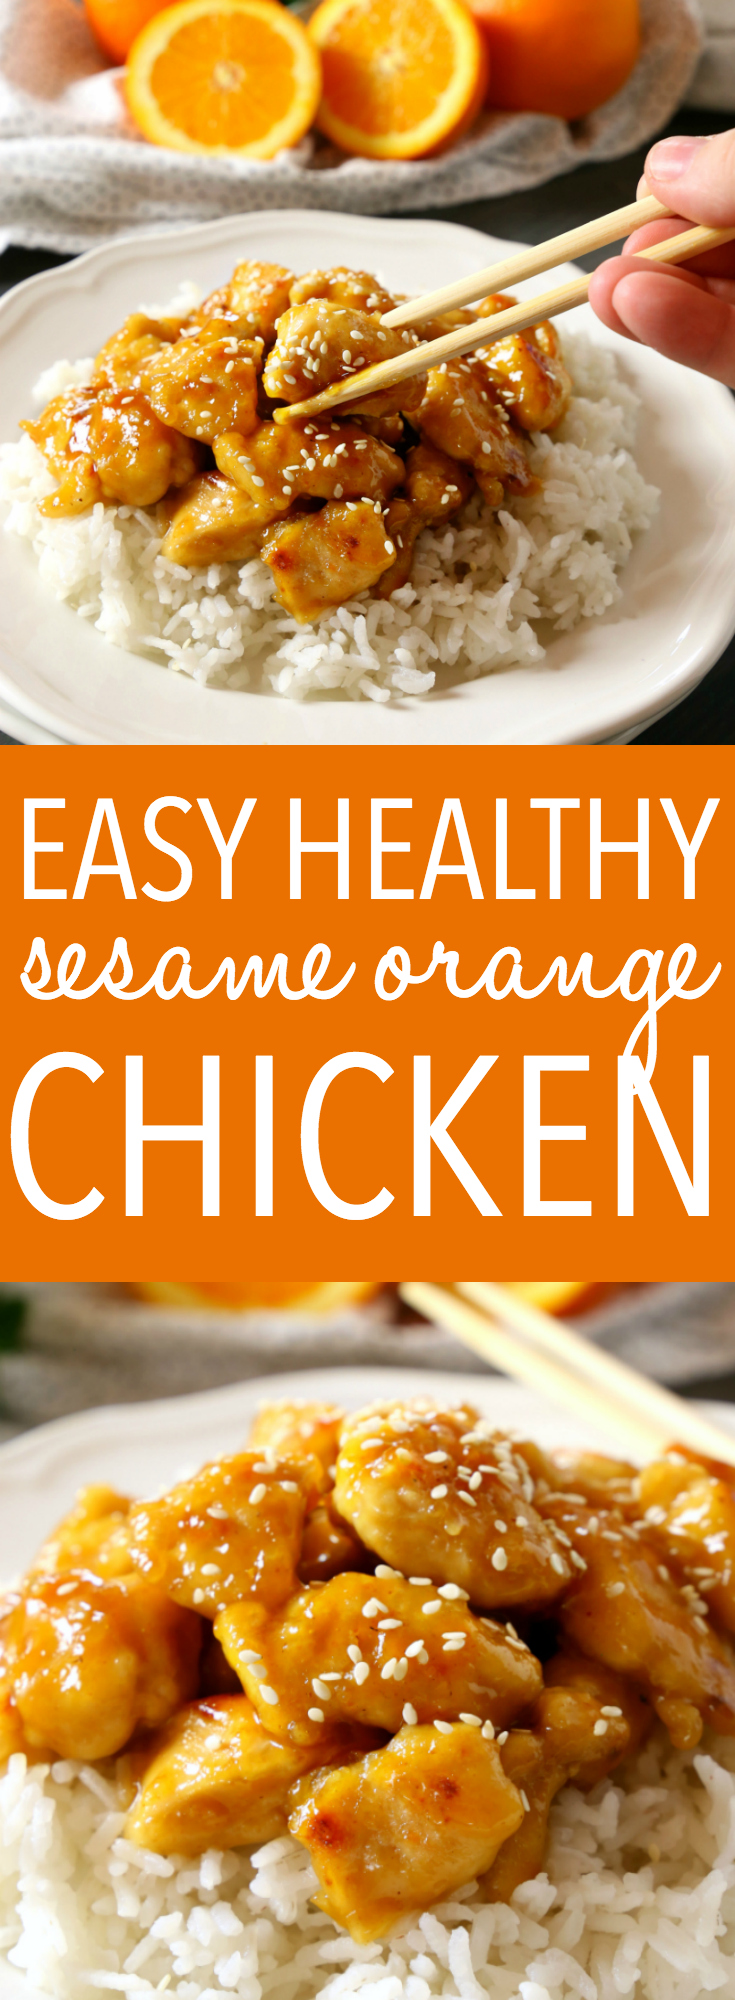 This Easy Healthier Sesame Orange Chicken is the perfect Asian-inspired weeknight meal that's better than take-out and a healthy choice for the whole family! Make it in 15 minutes or less! Recipe from thebusybaker.ca! #orangechicken #easystirfry #weeknightmeal #15minutemeal via @busybakerblog